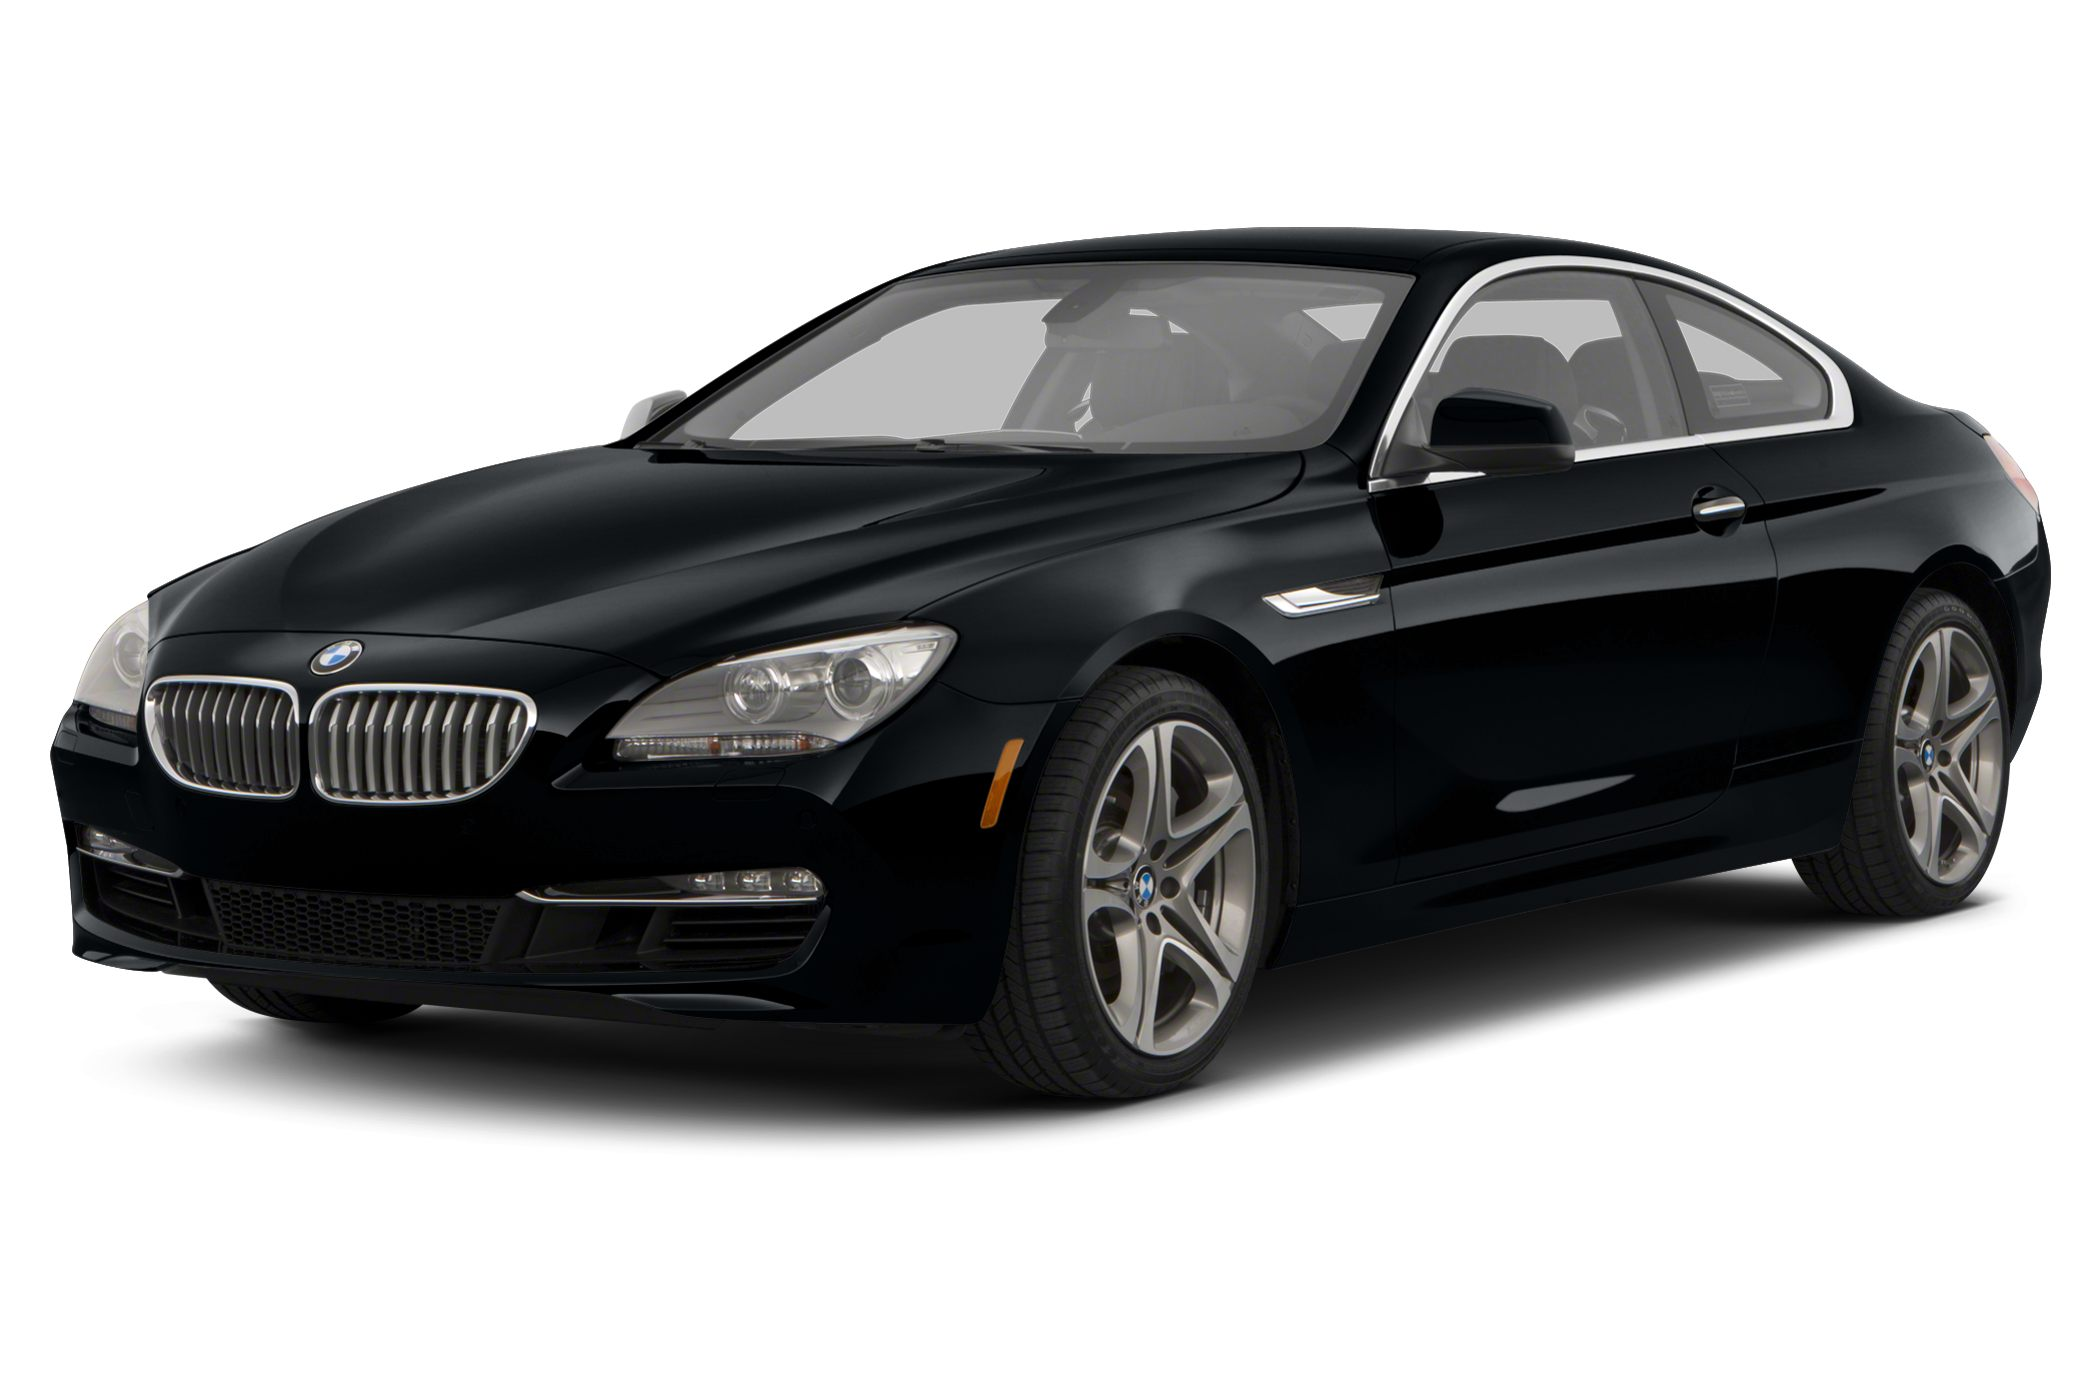 2013 BMW 640 I Convertible for sale in Wallingford for $48,900 with 26,000 miles